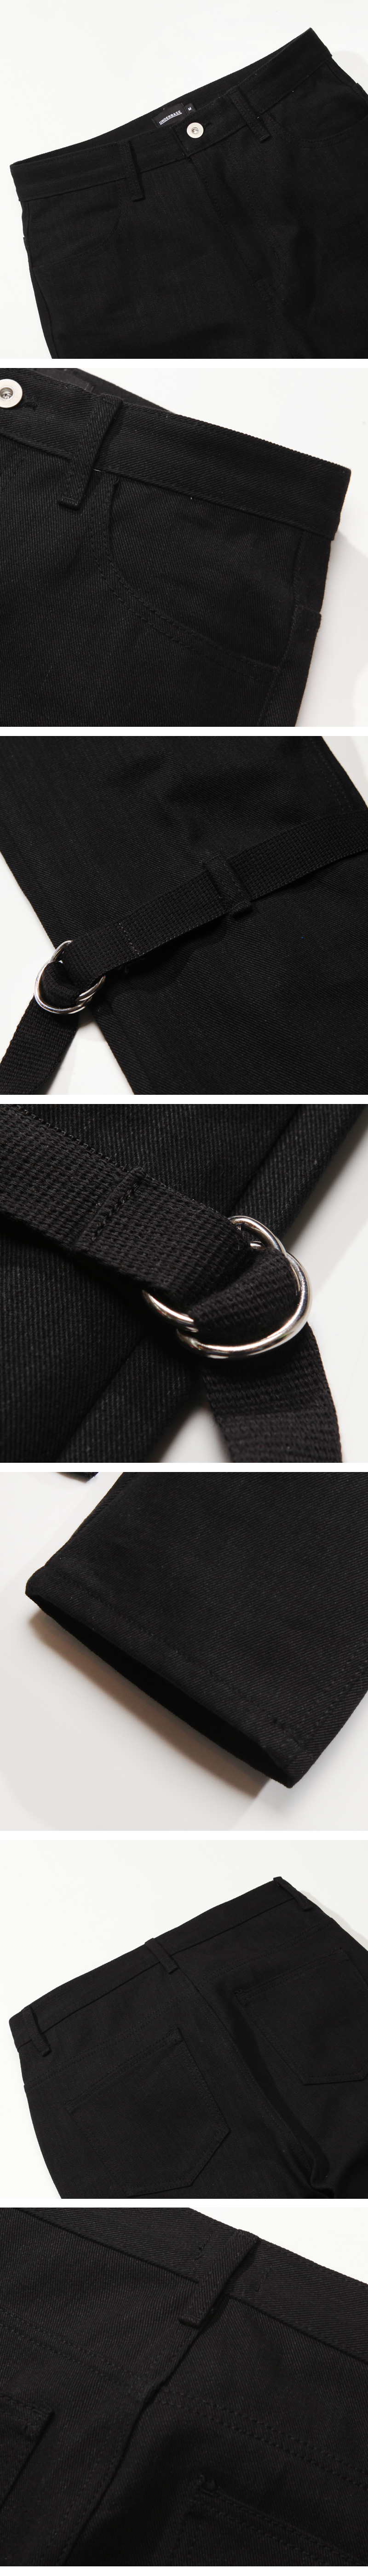 20180307_bondage_strap_pants_detail_mj.jpg